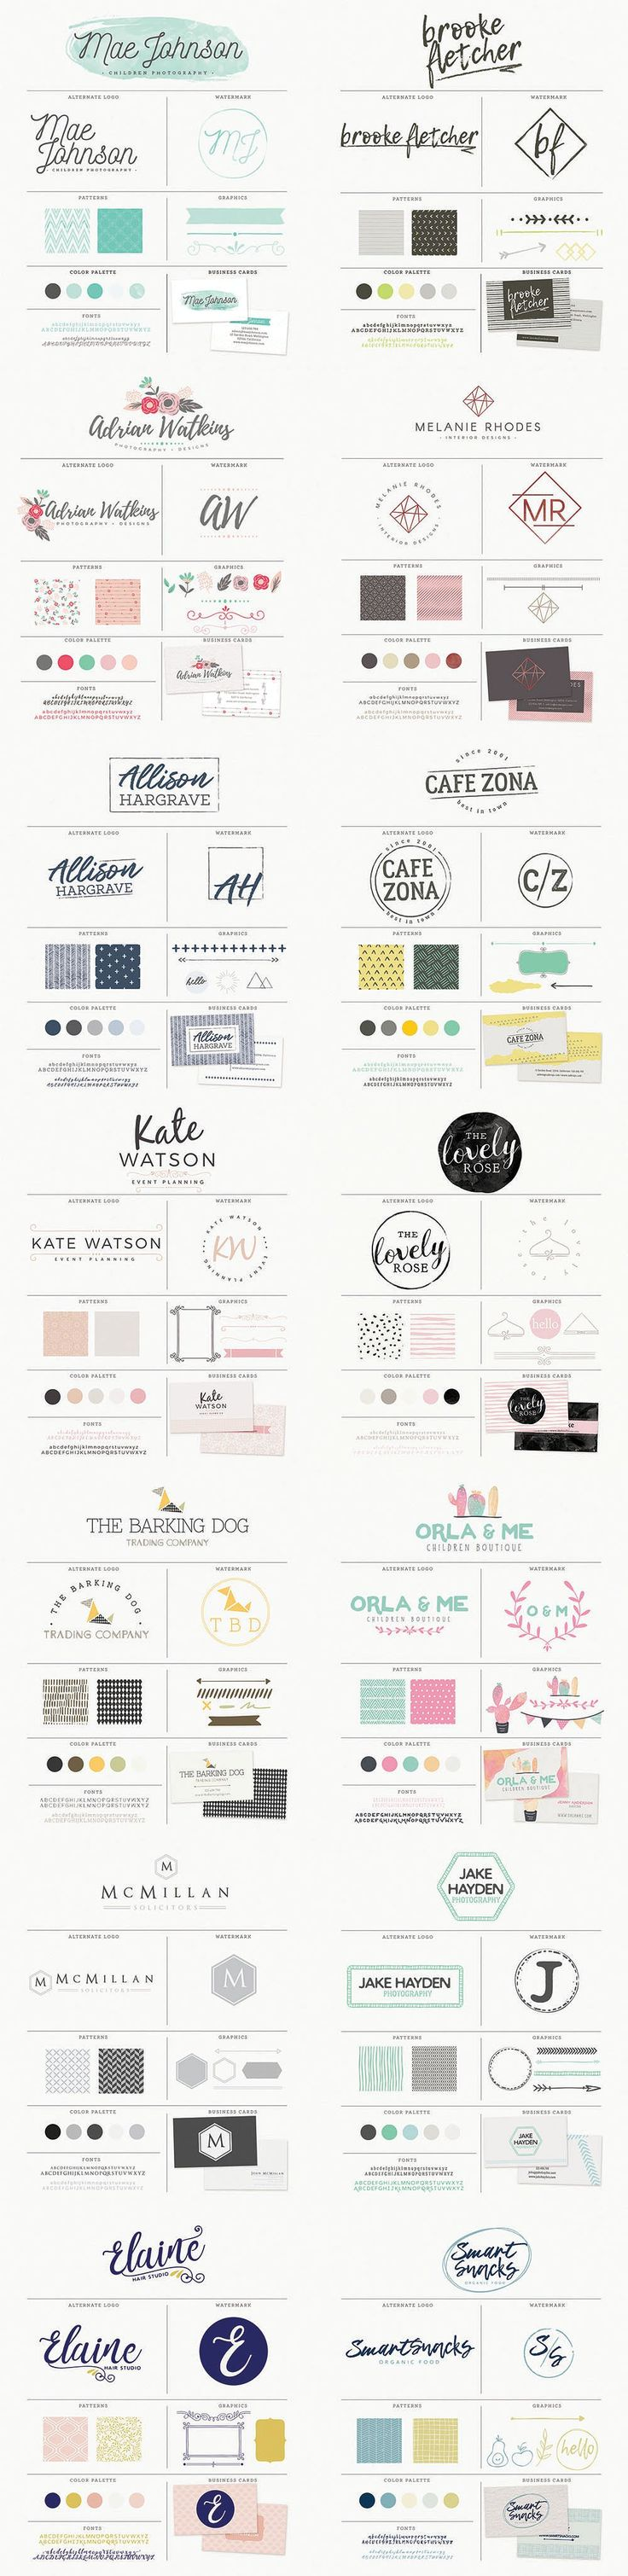 Essential Branding Kit by 7th Avenue Designs on @creativemarket